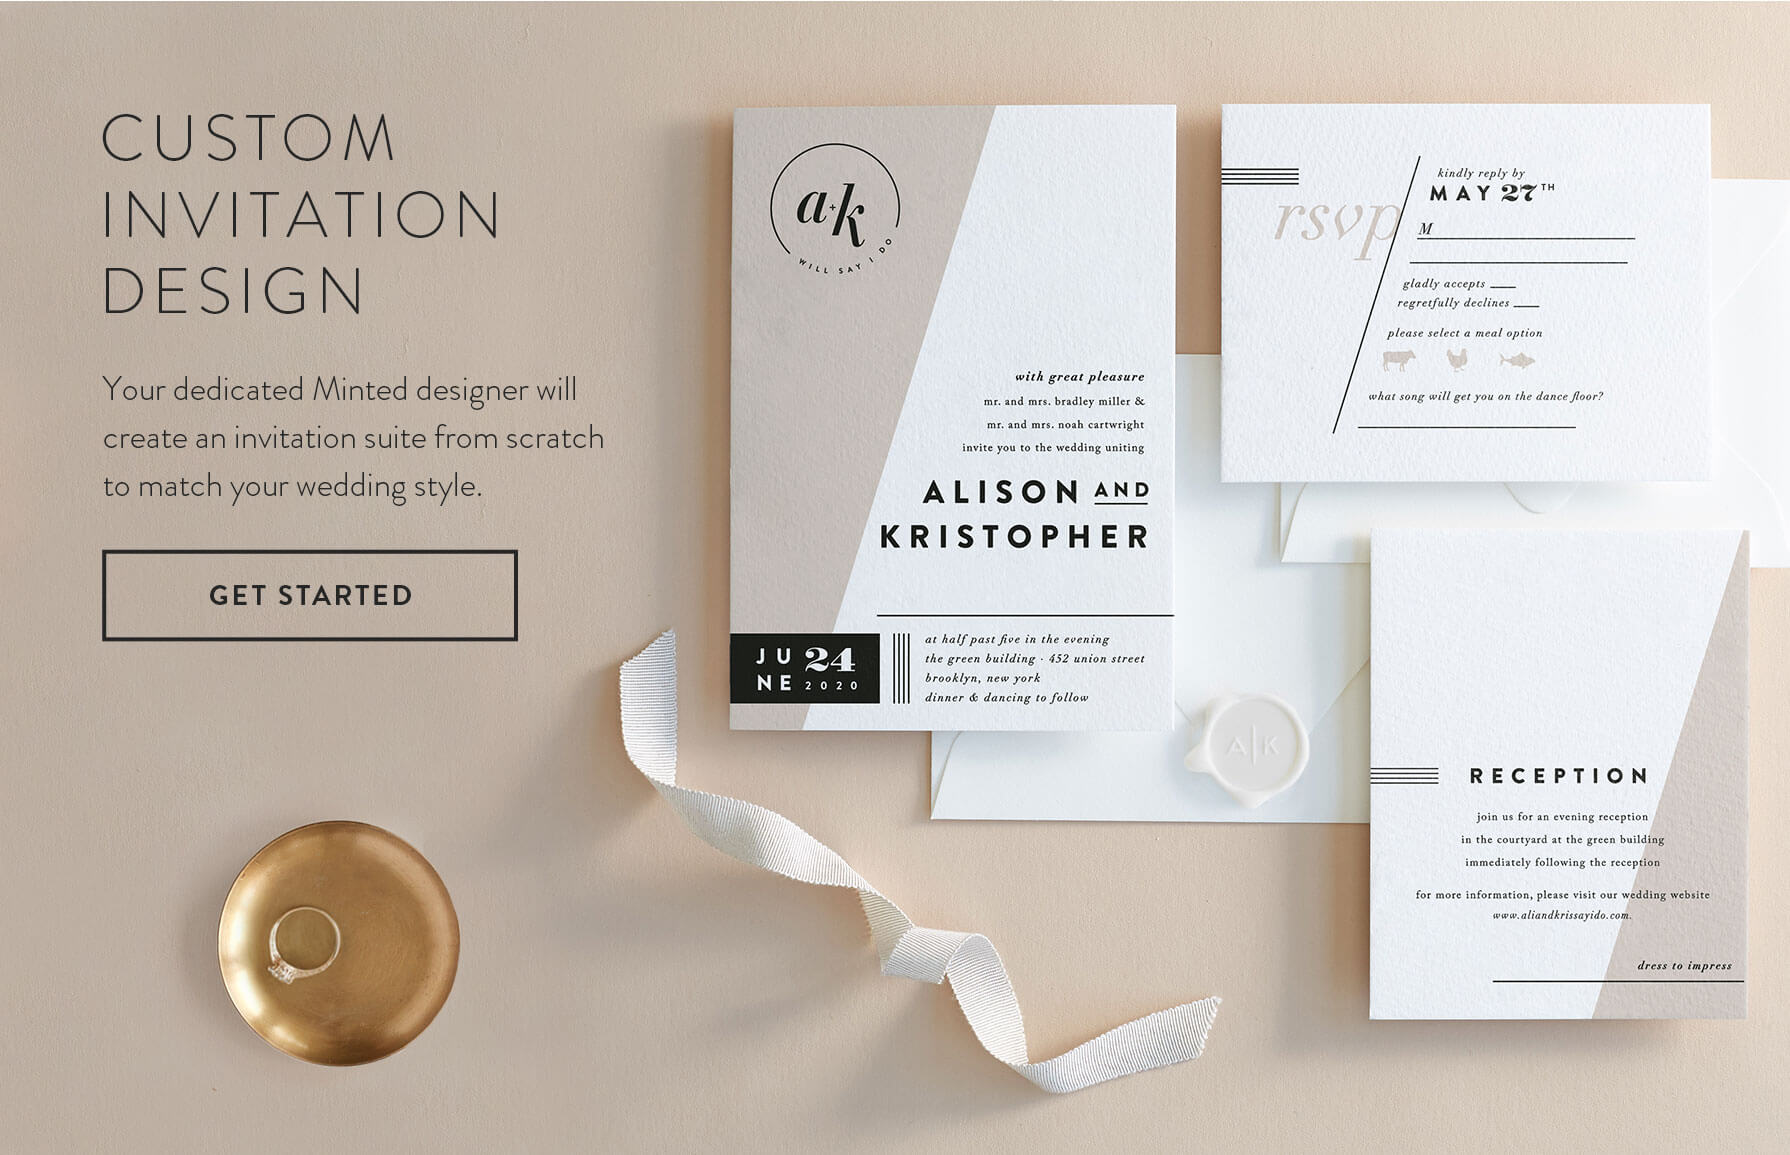 Get Started with Custom Invitation Design